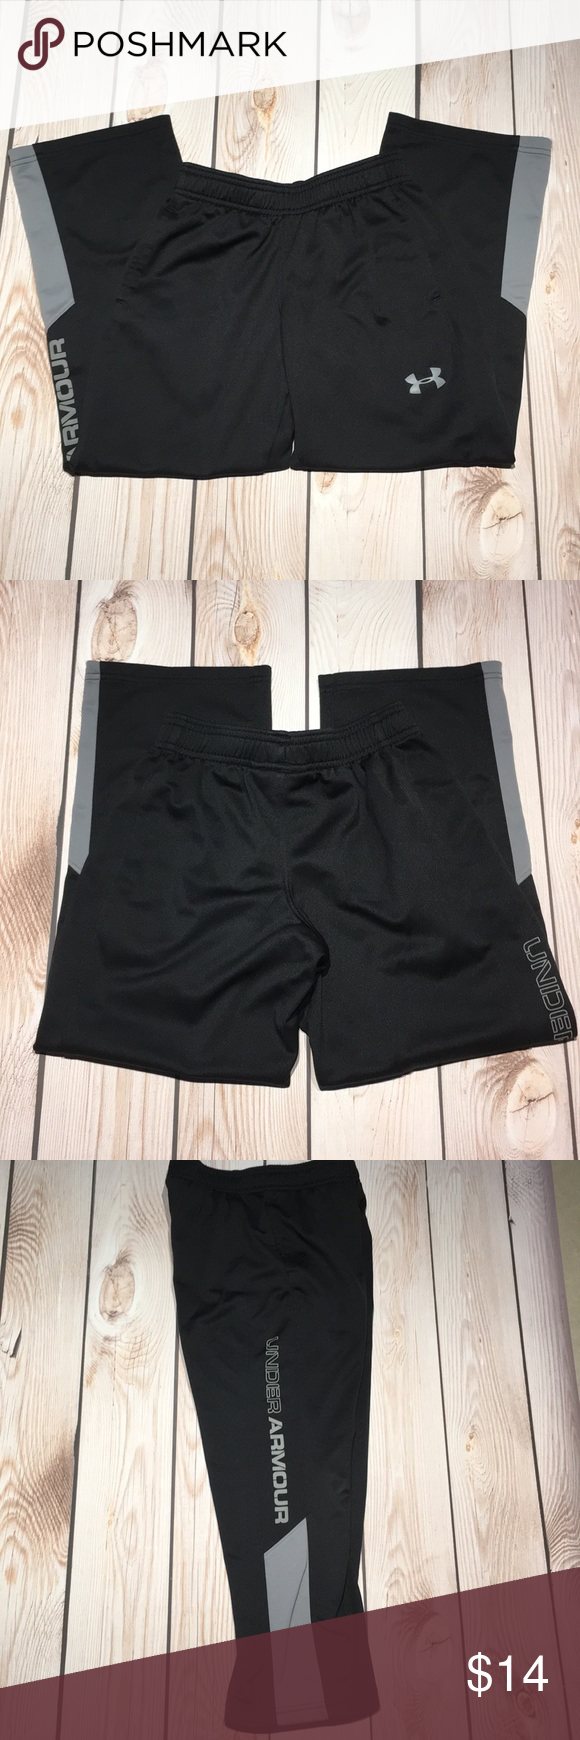 Under Armour youth boy or girl pants in My Posh Picks